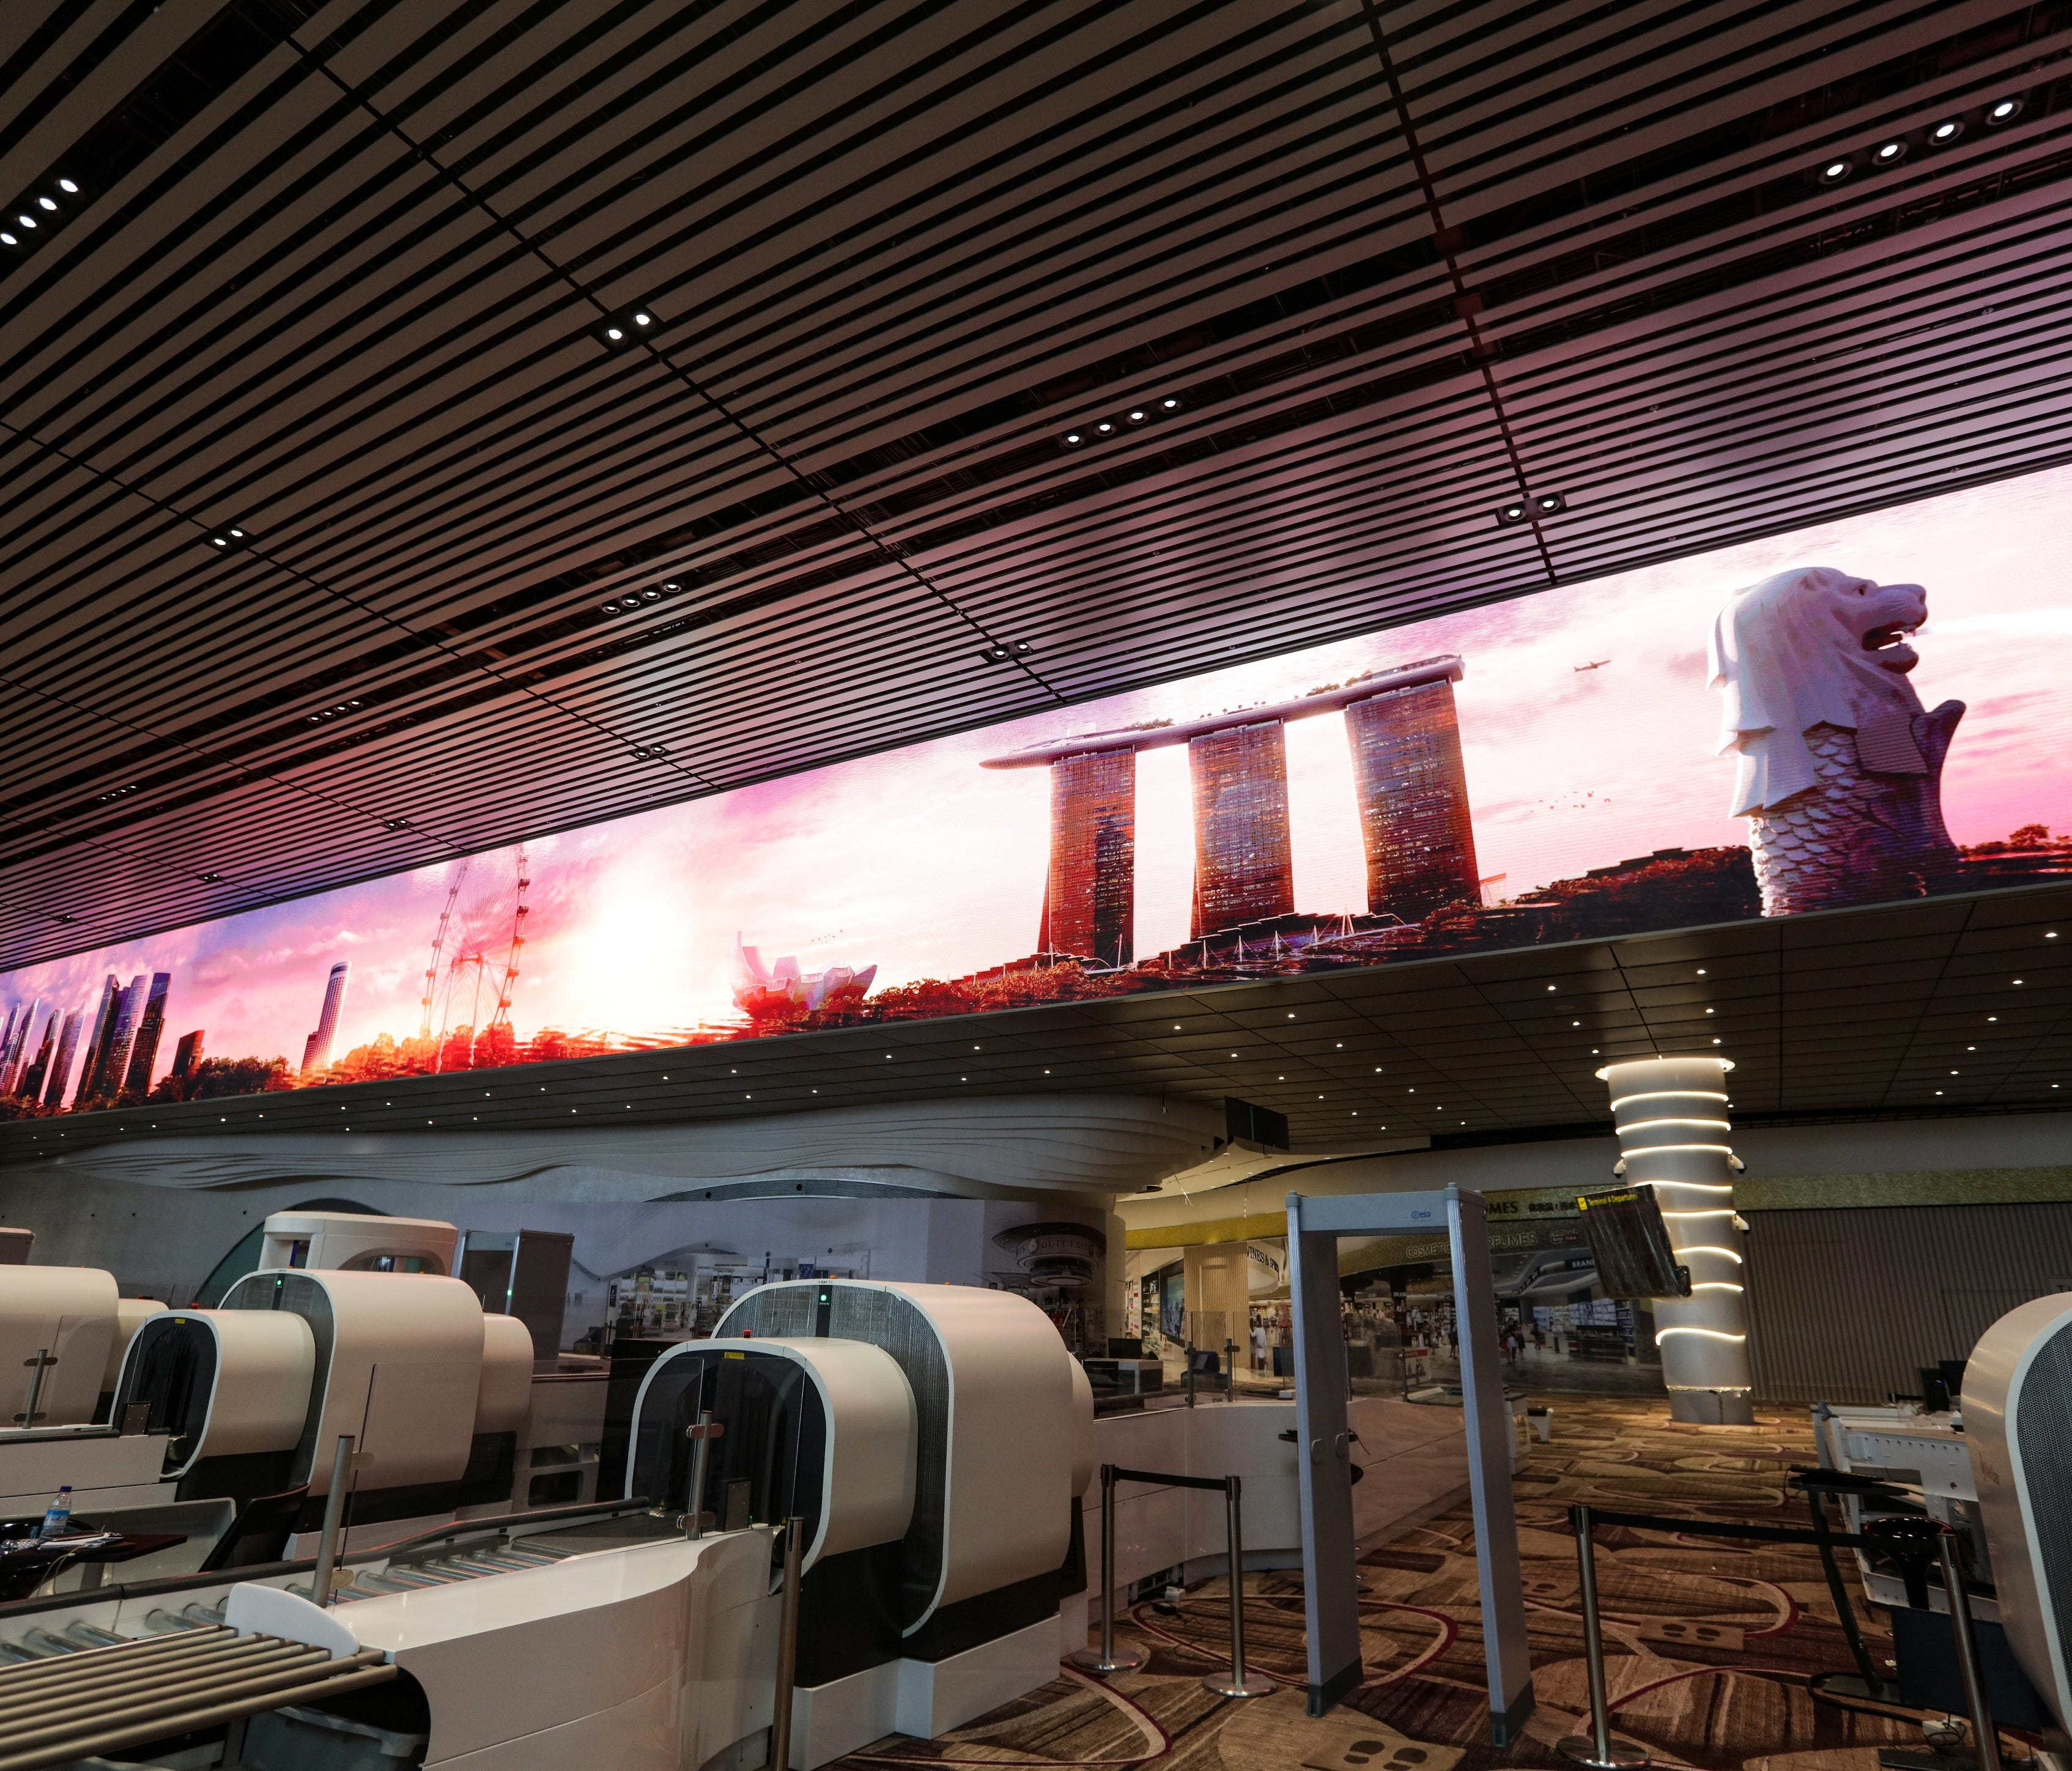 LED Immersive Wall behind security checkpoint at Changi T4 has 50 minutes worth of images and animated content.